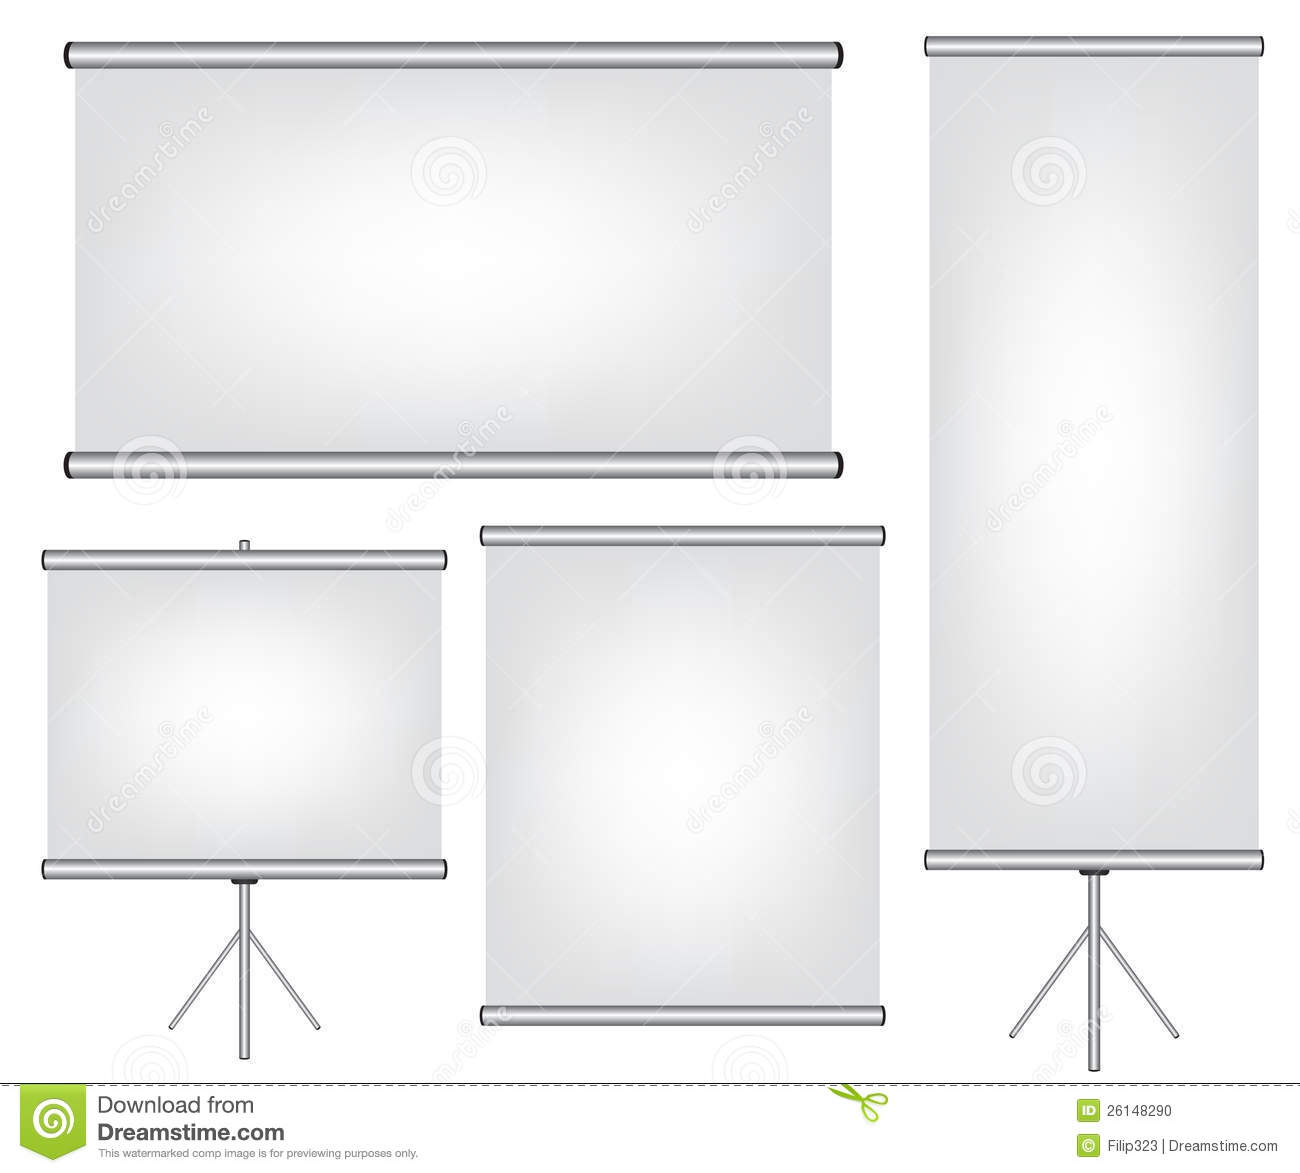 Projector Screen and Roll Up Banner Illustration Stock Vector ...